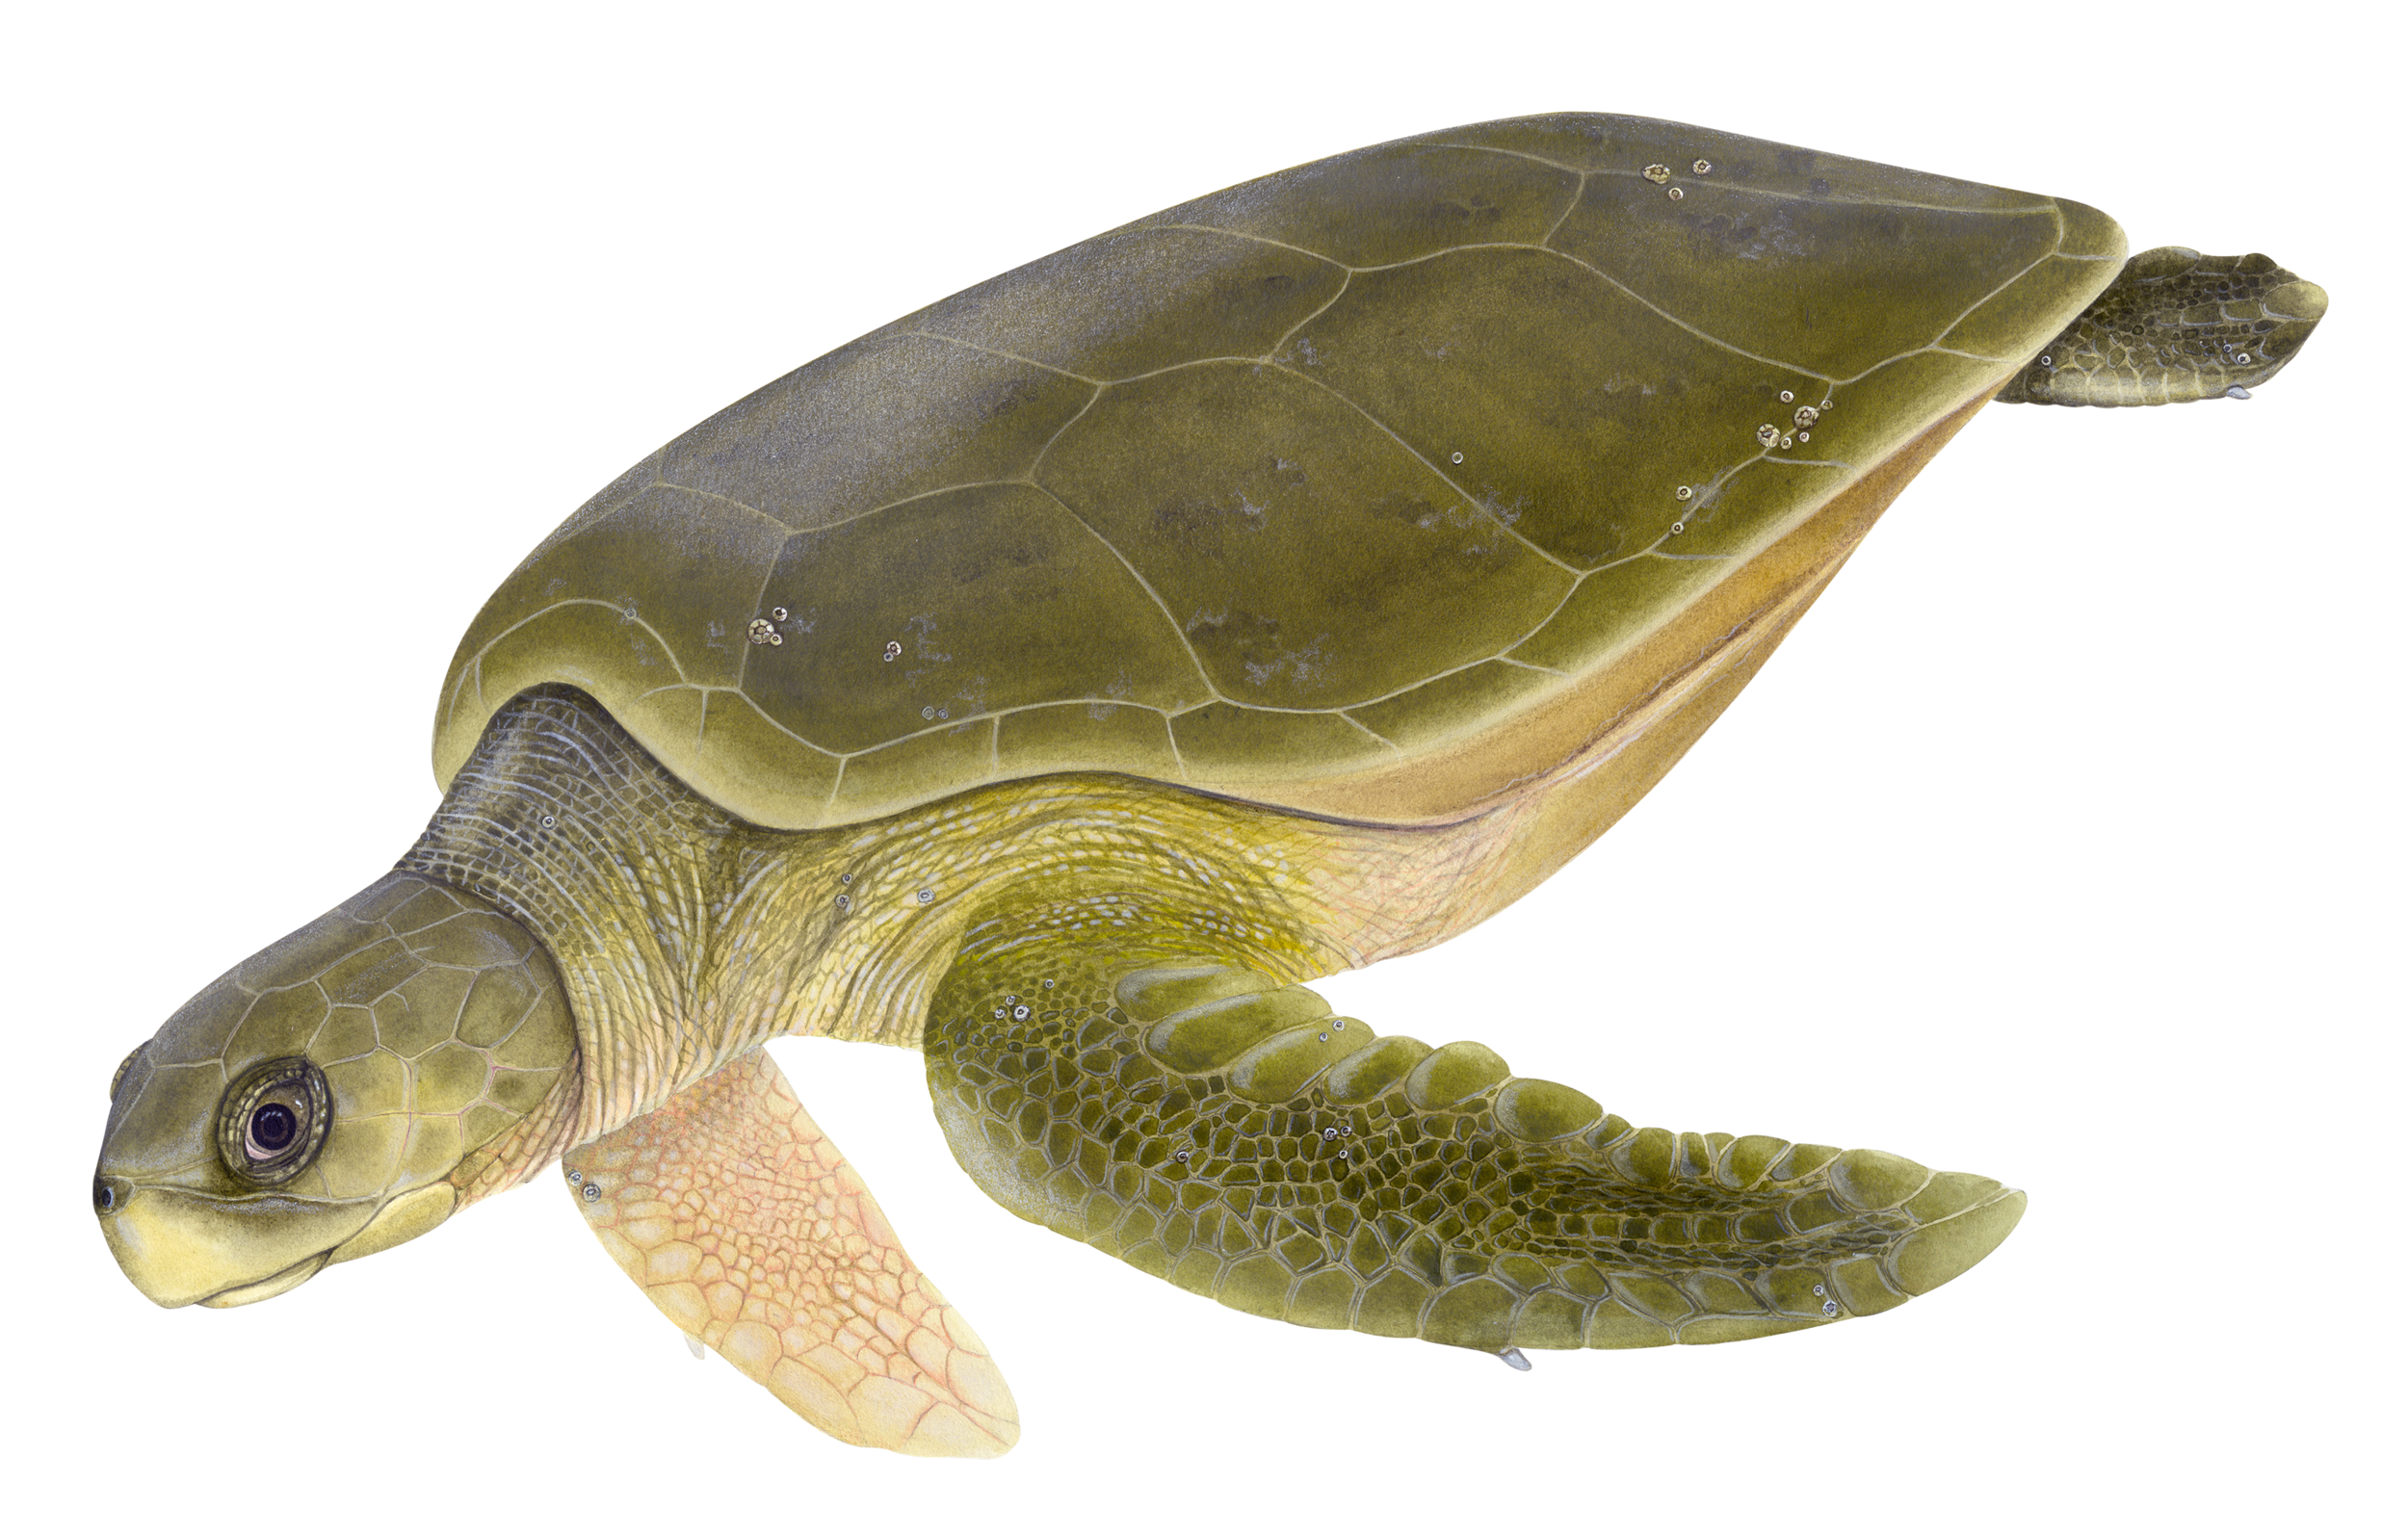 Illustration of a Flatback Sea Turtle